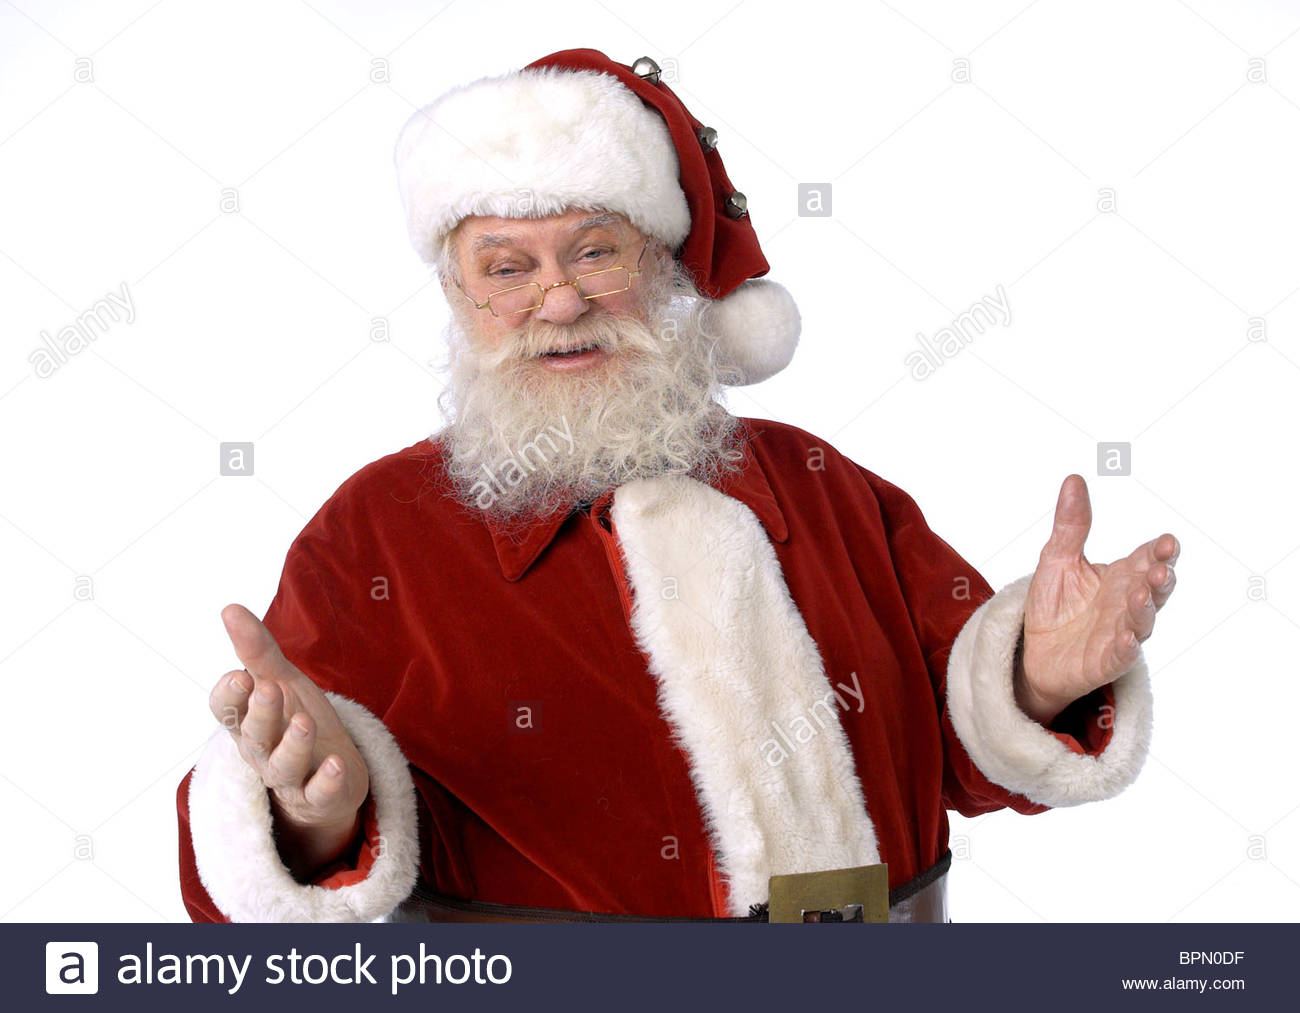 A Boyfriend For Christmas.Charles Durning A Boyfriend For Christmas 2004 Stock Photo